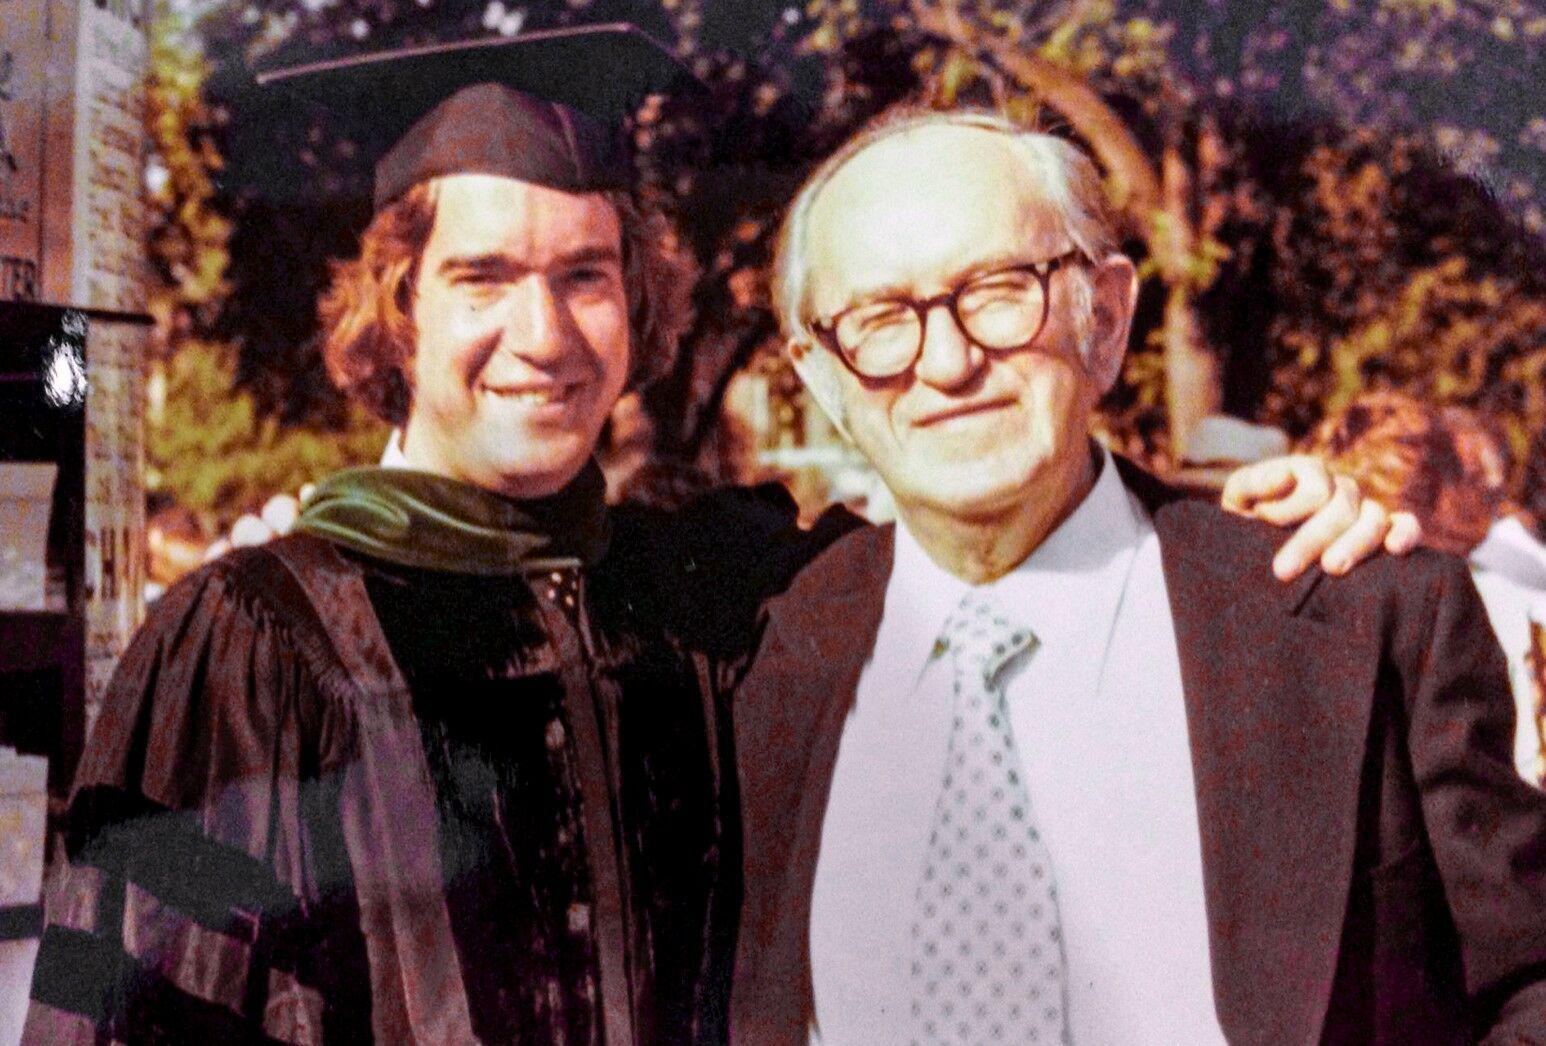 A young Dr. Rochelson, wearing graduation regalia, poses with his father.